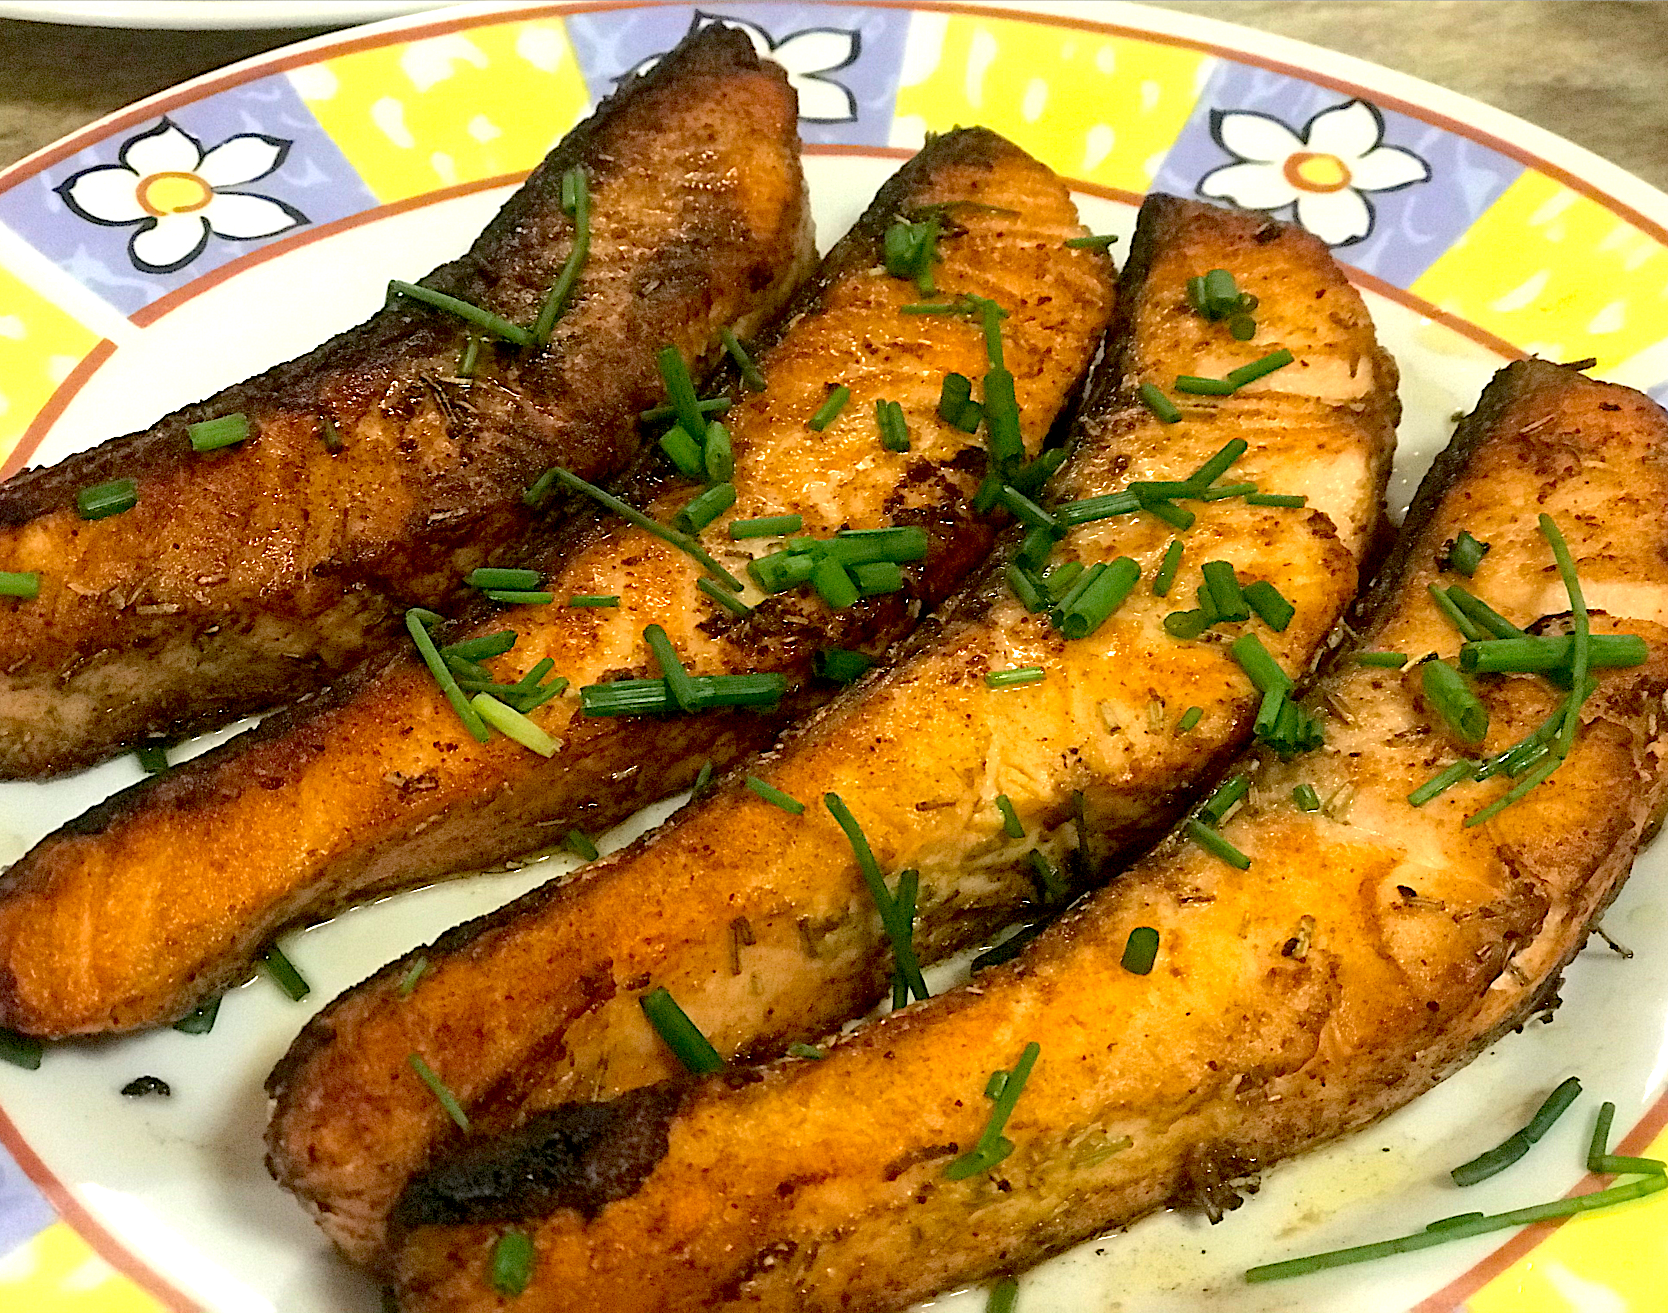 Butter mustard and honey sauce salmon grilled with rosemary herbs and chives for the topping